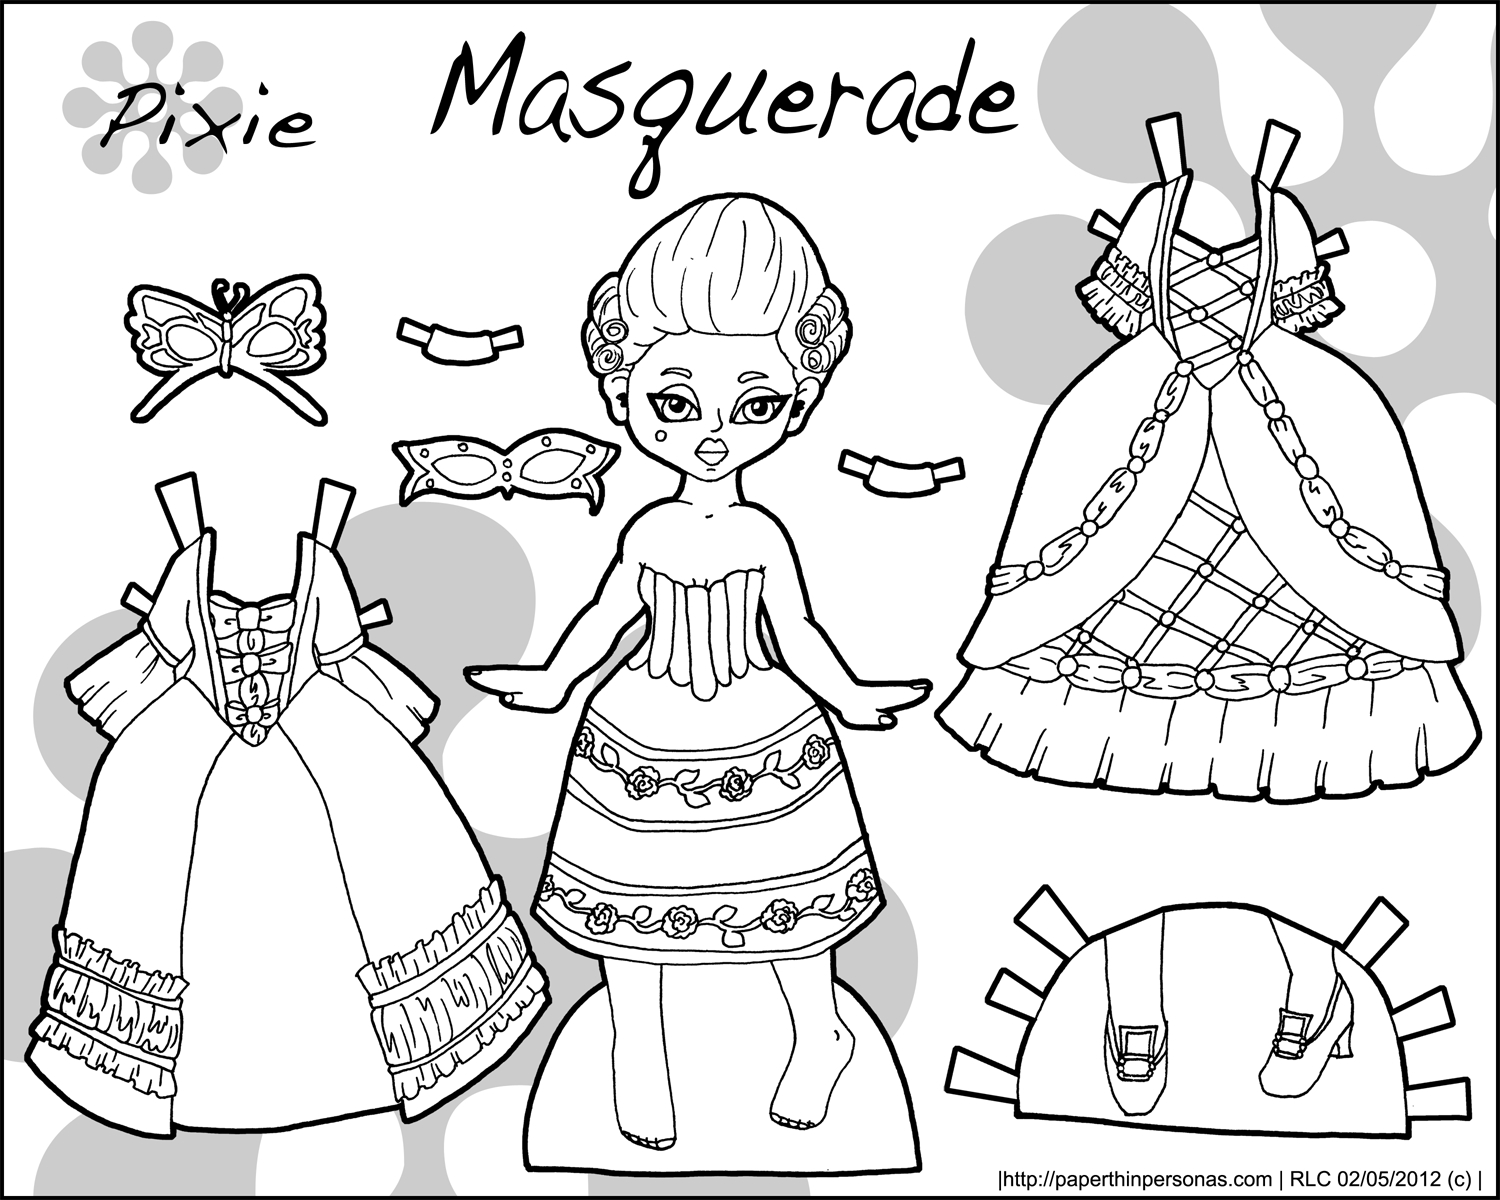 Doll Coloring Pages Printable. Free Printable Stationary Primary New - Printable Paper Dolls To Color Free